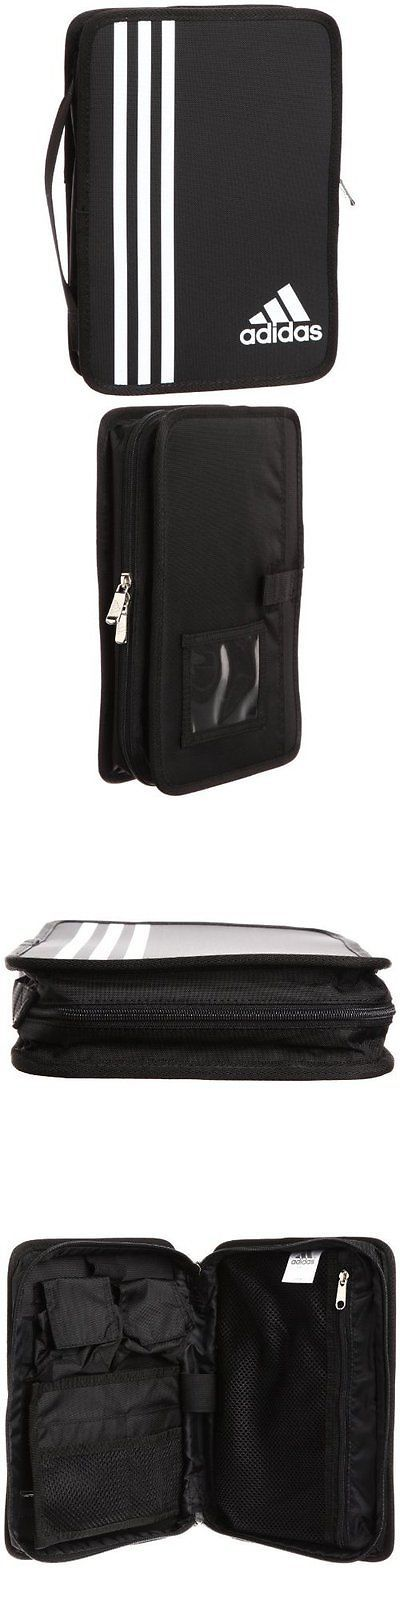 Other Soccer 2914: Adidas Japan Football Referee Bag Case Black Kq833 Japan New. -> BUY IT NOW ONLY: $30.84 on eBay!